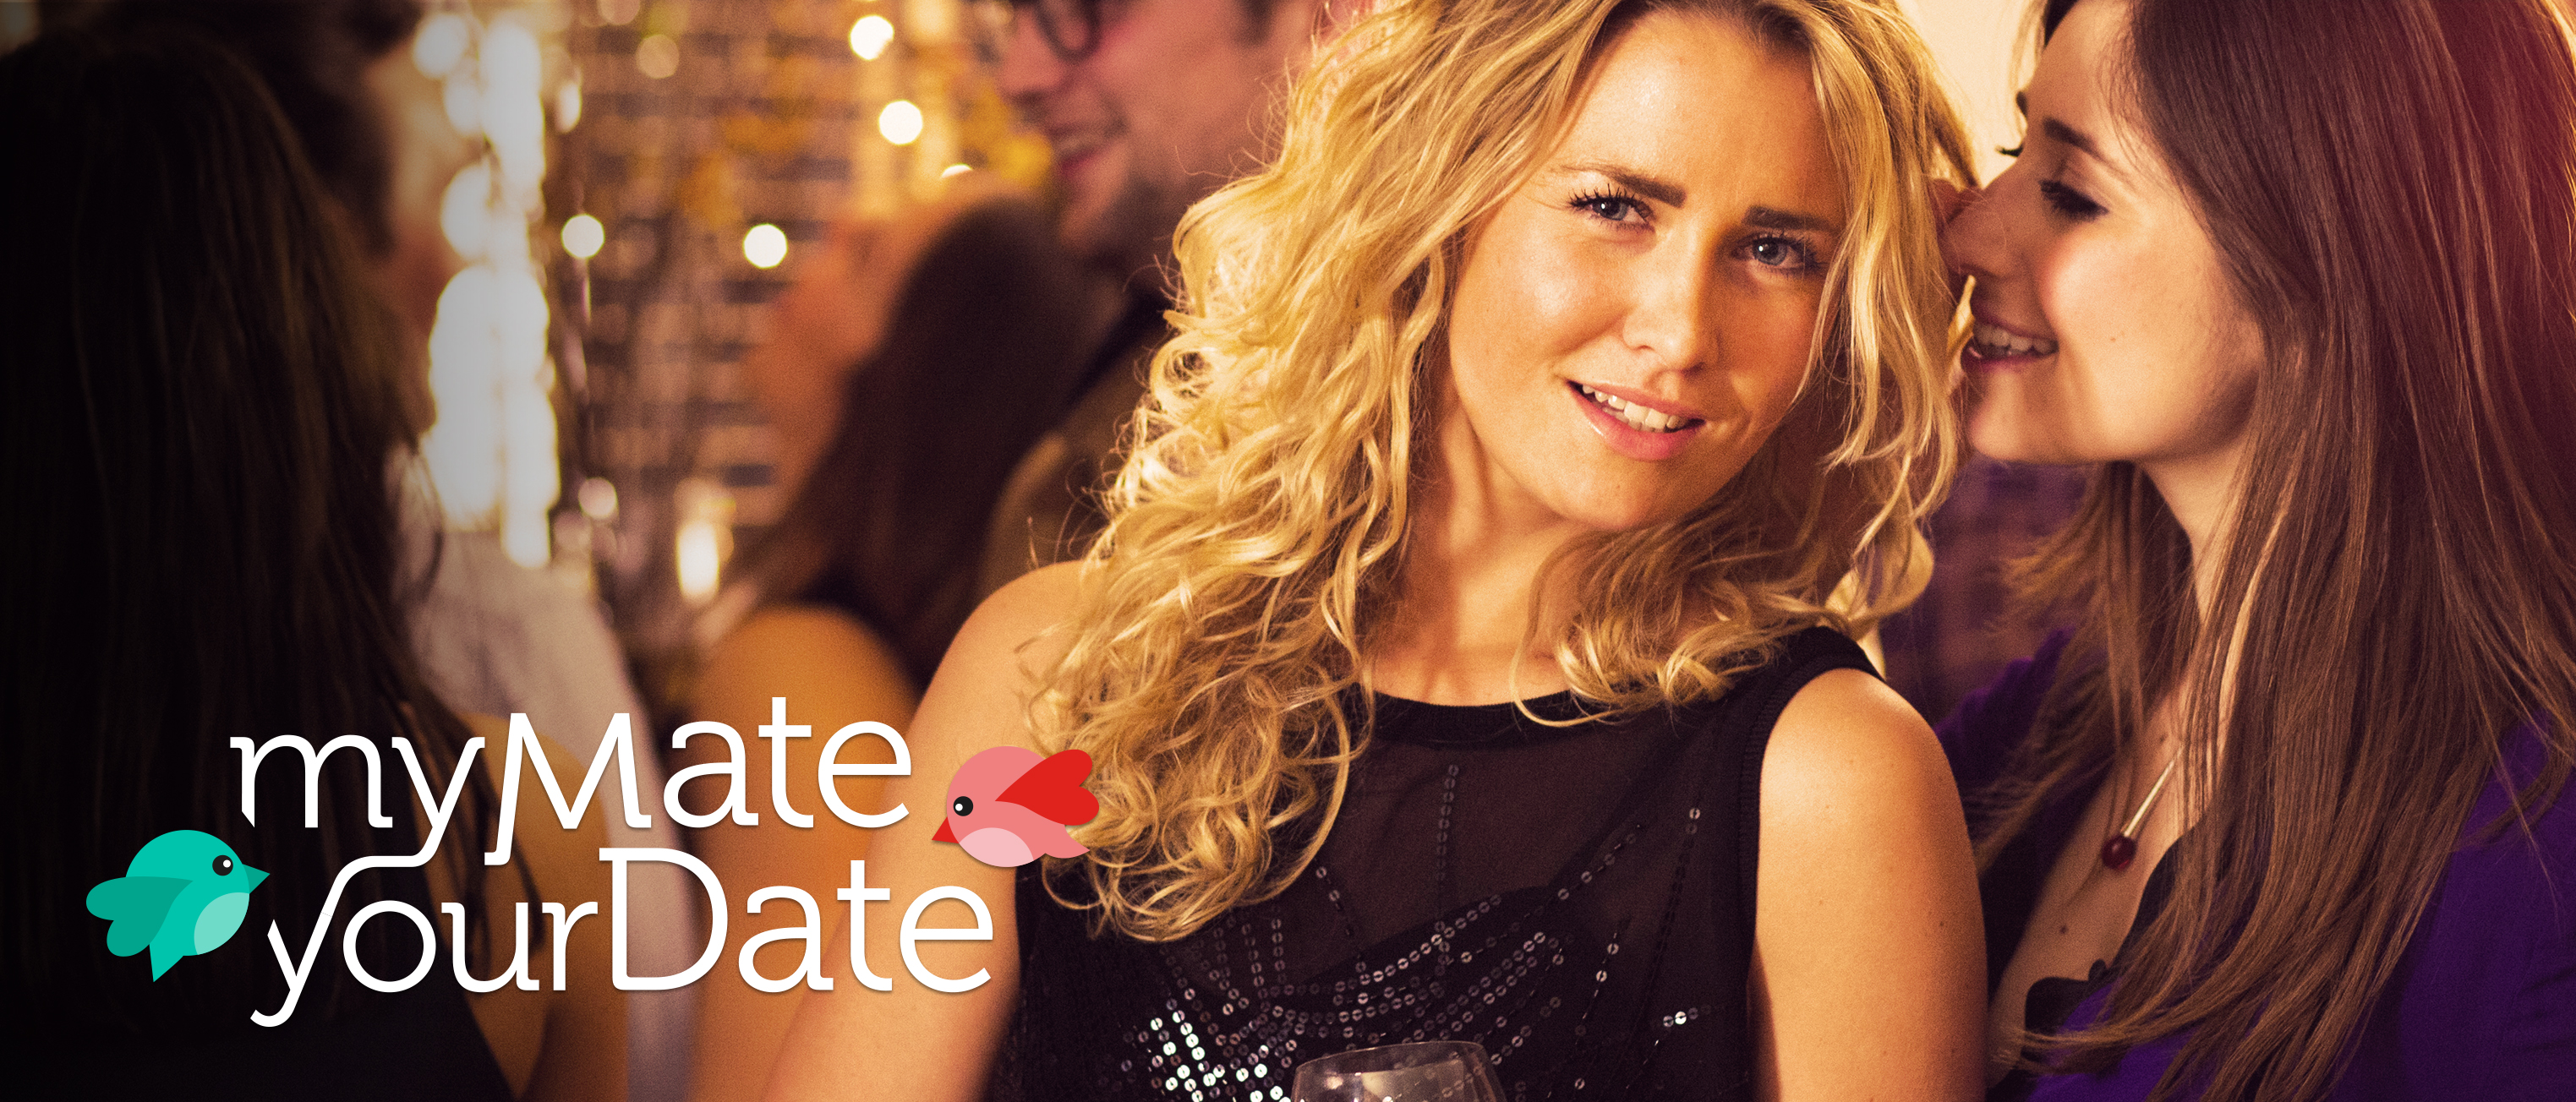 new london dating Welcome to london's largest singles meetup groupwe have hosted over 2,000 events, and we have a fabulous community of gorgeous singles who are all warm and.